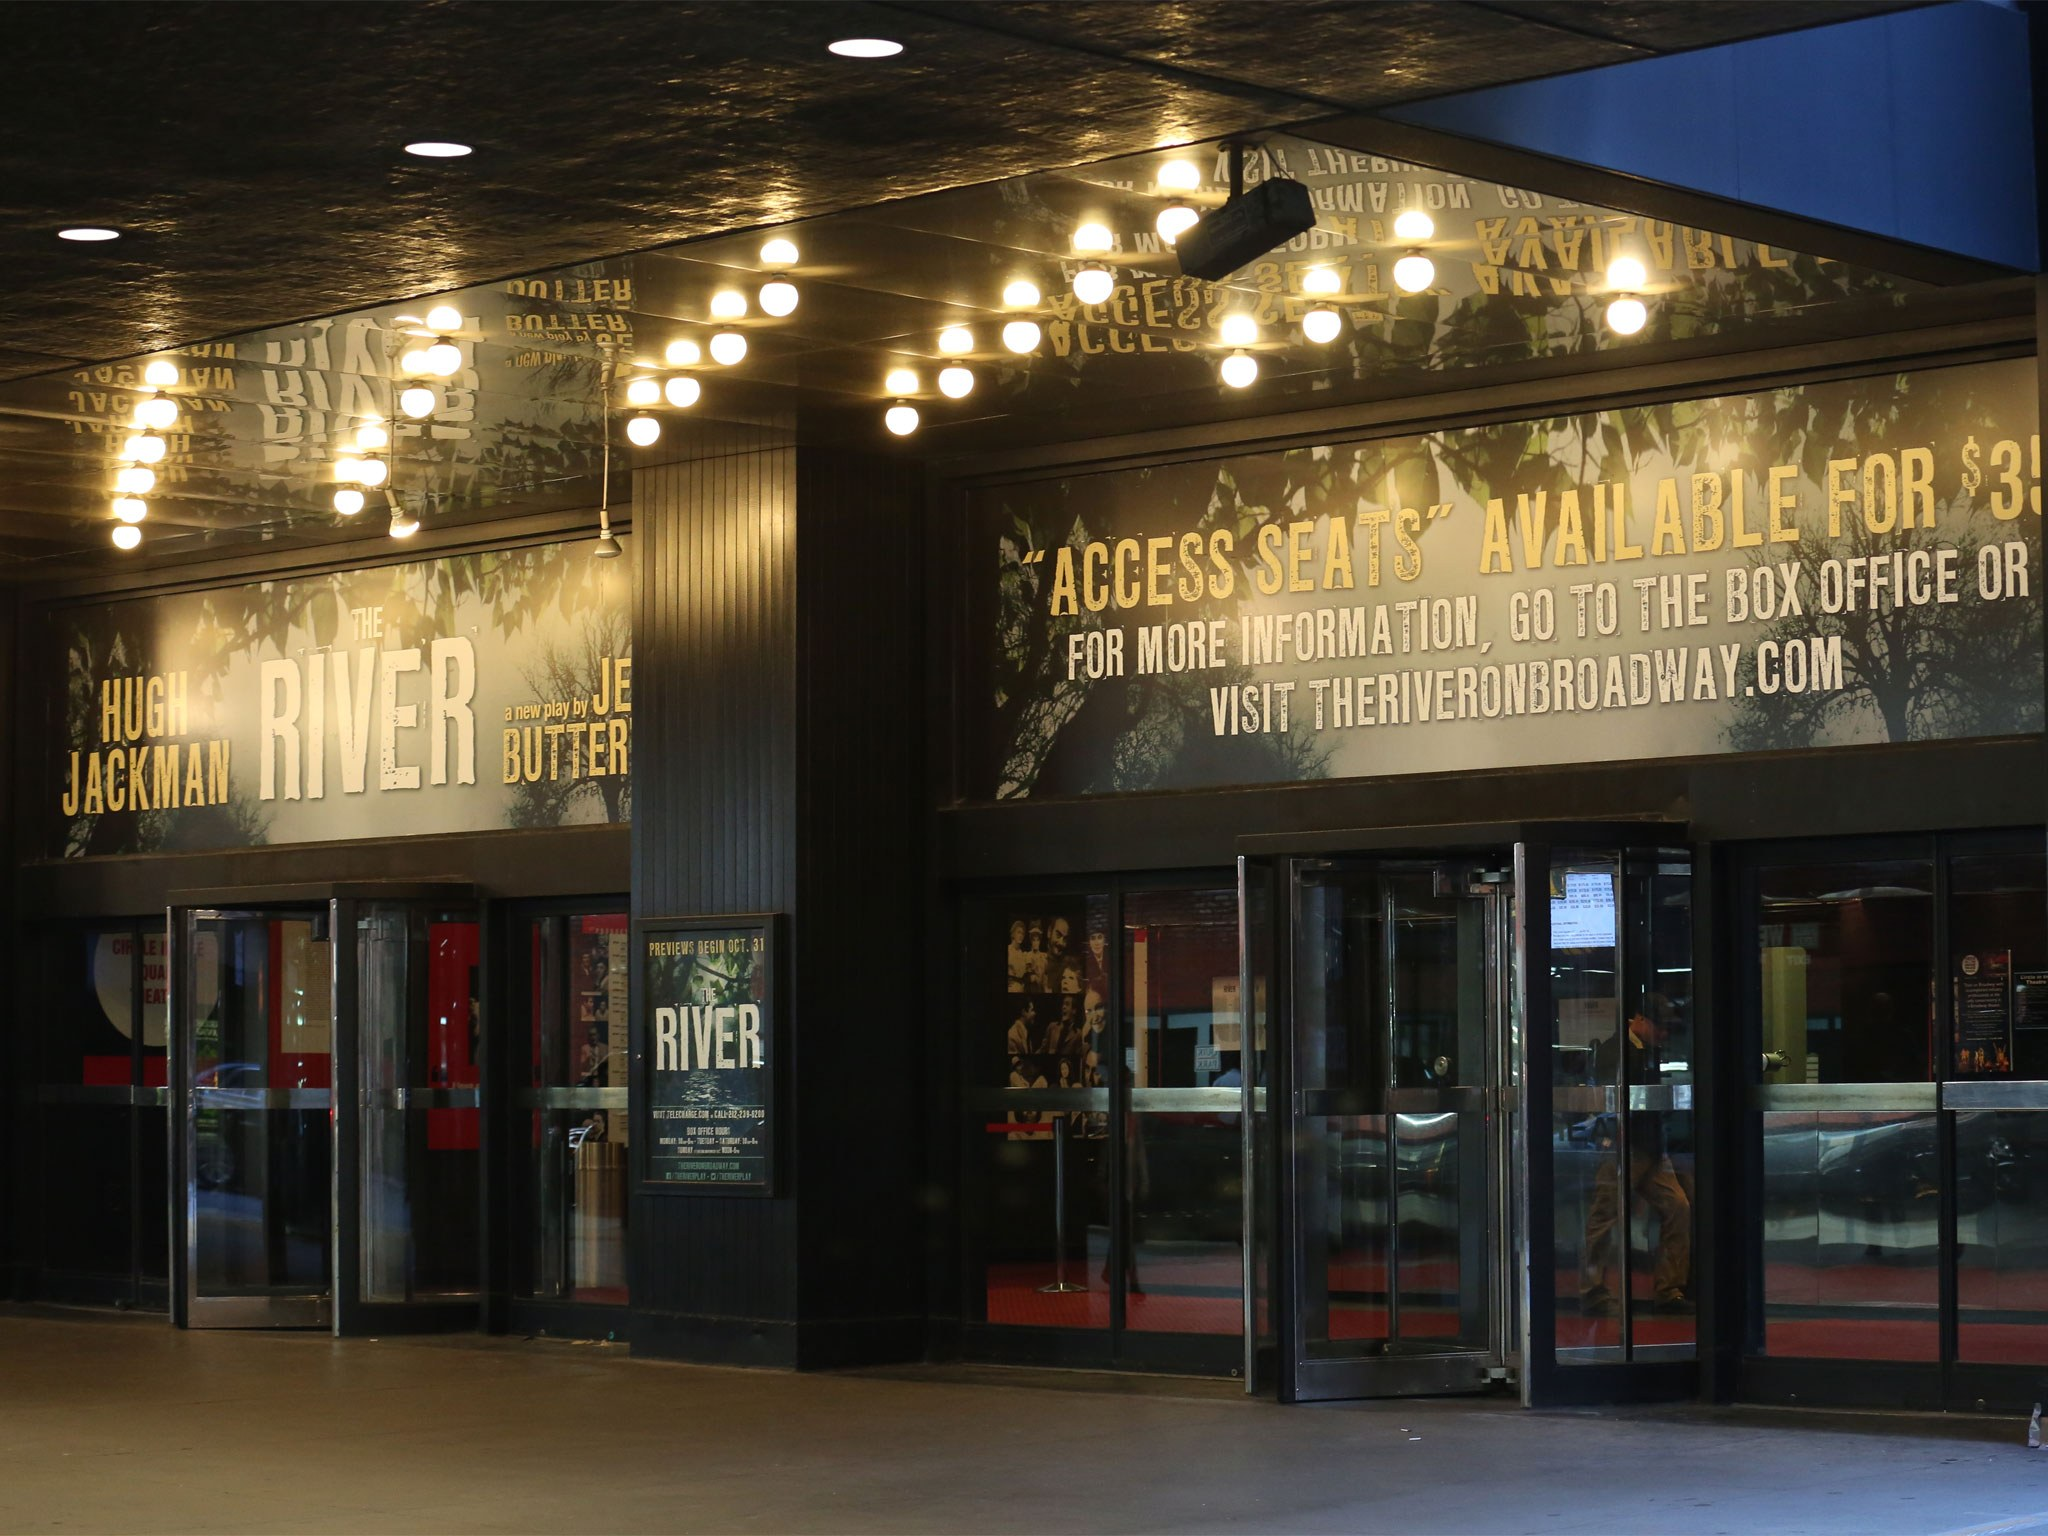 The River Broadway Theatre Front Entrance